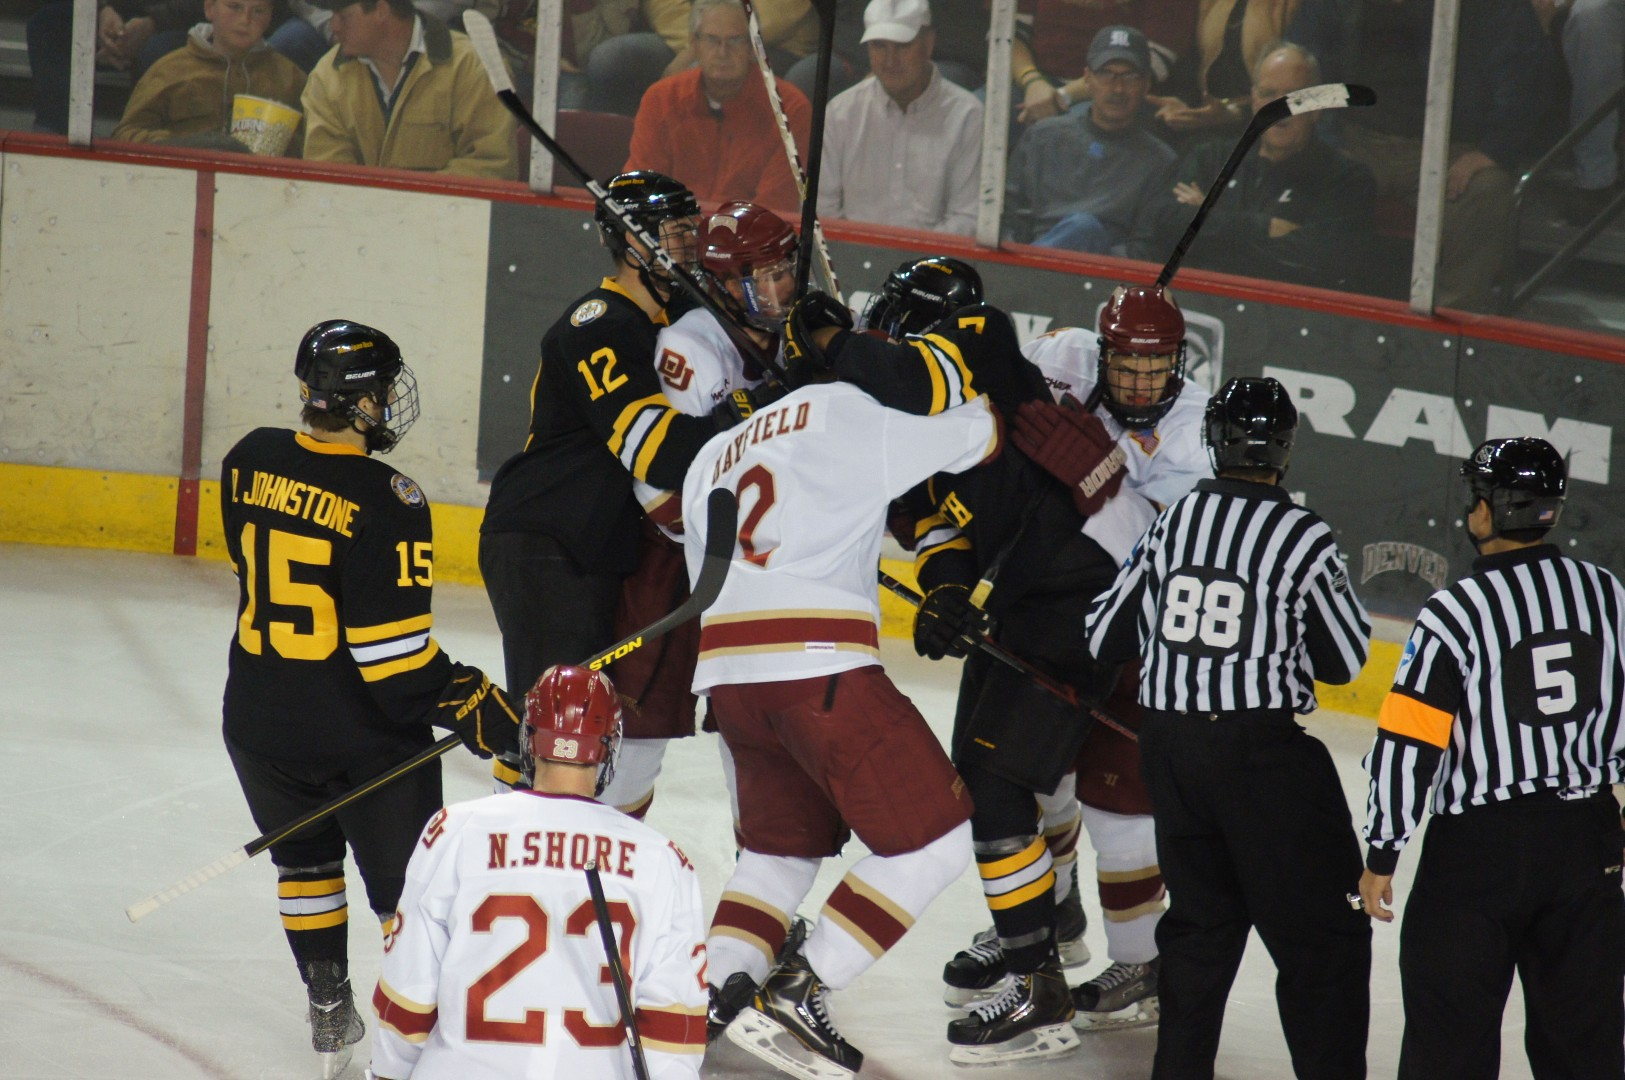 Despite being plagued by a collective 17 penalties and a number of fights in Saturday's game between Denver and Michigan Tech, the Pioneers extended their win streak to four games, the best start since the 2008-2009 season. Photo by Ryan Lumpkin.